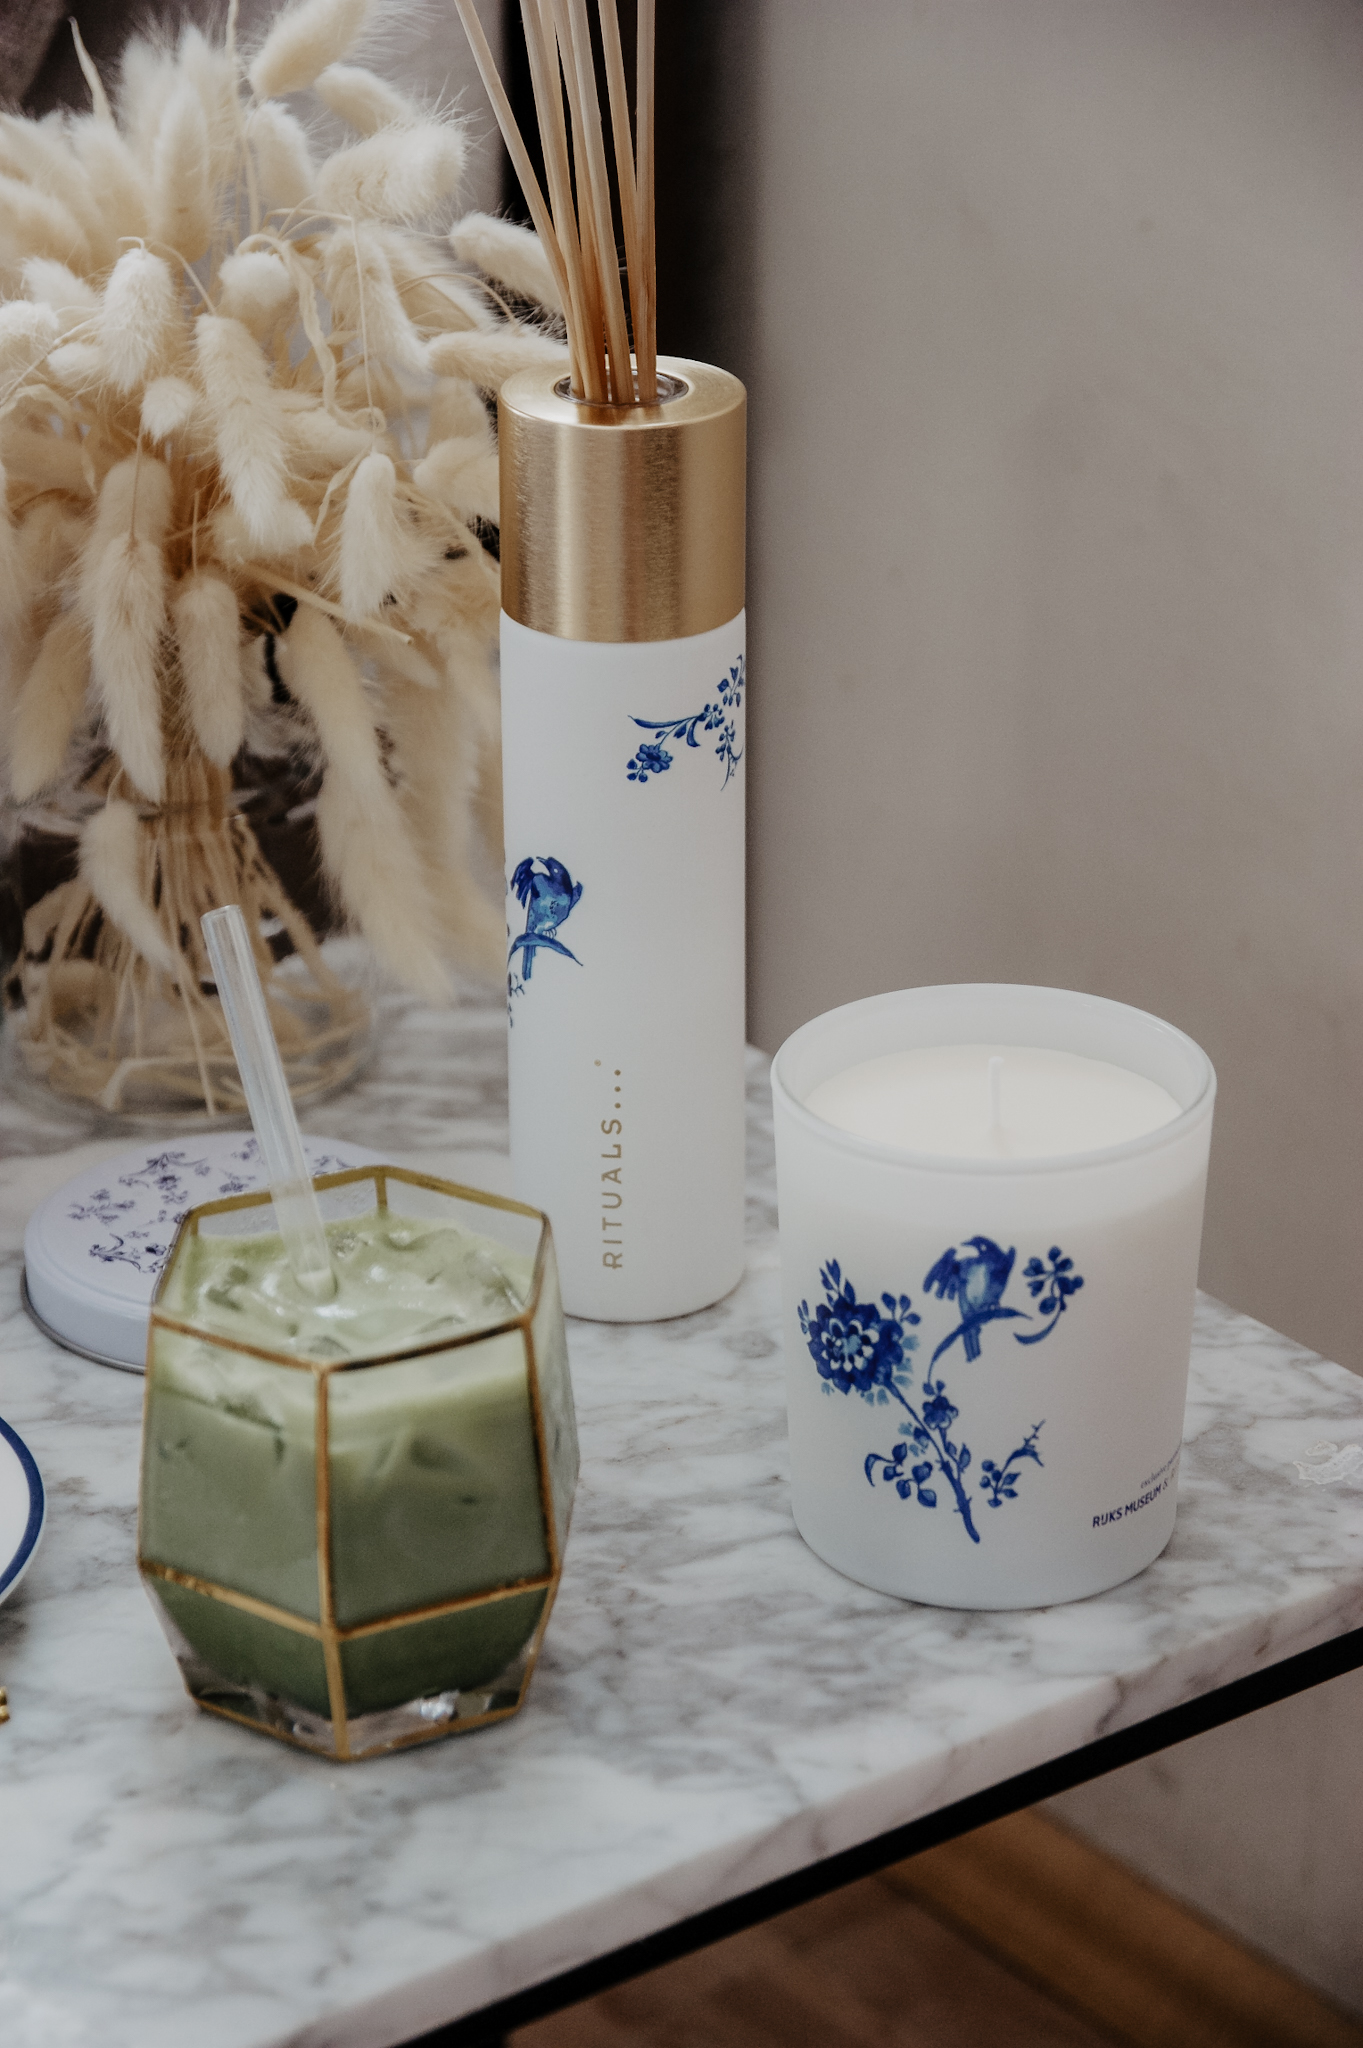 Rituals: Amsterdam collection